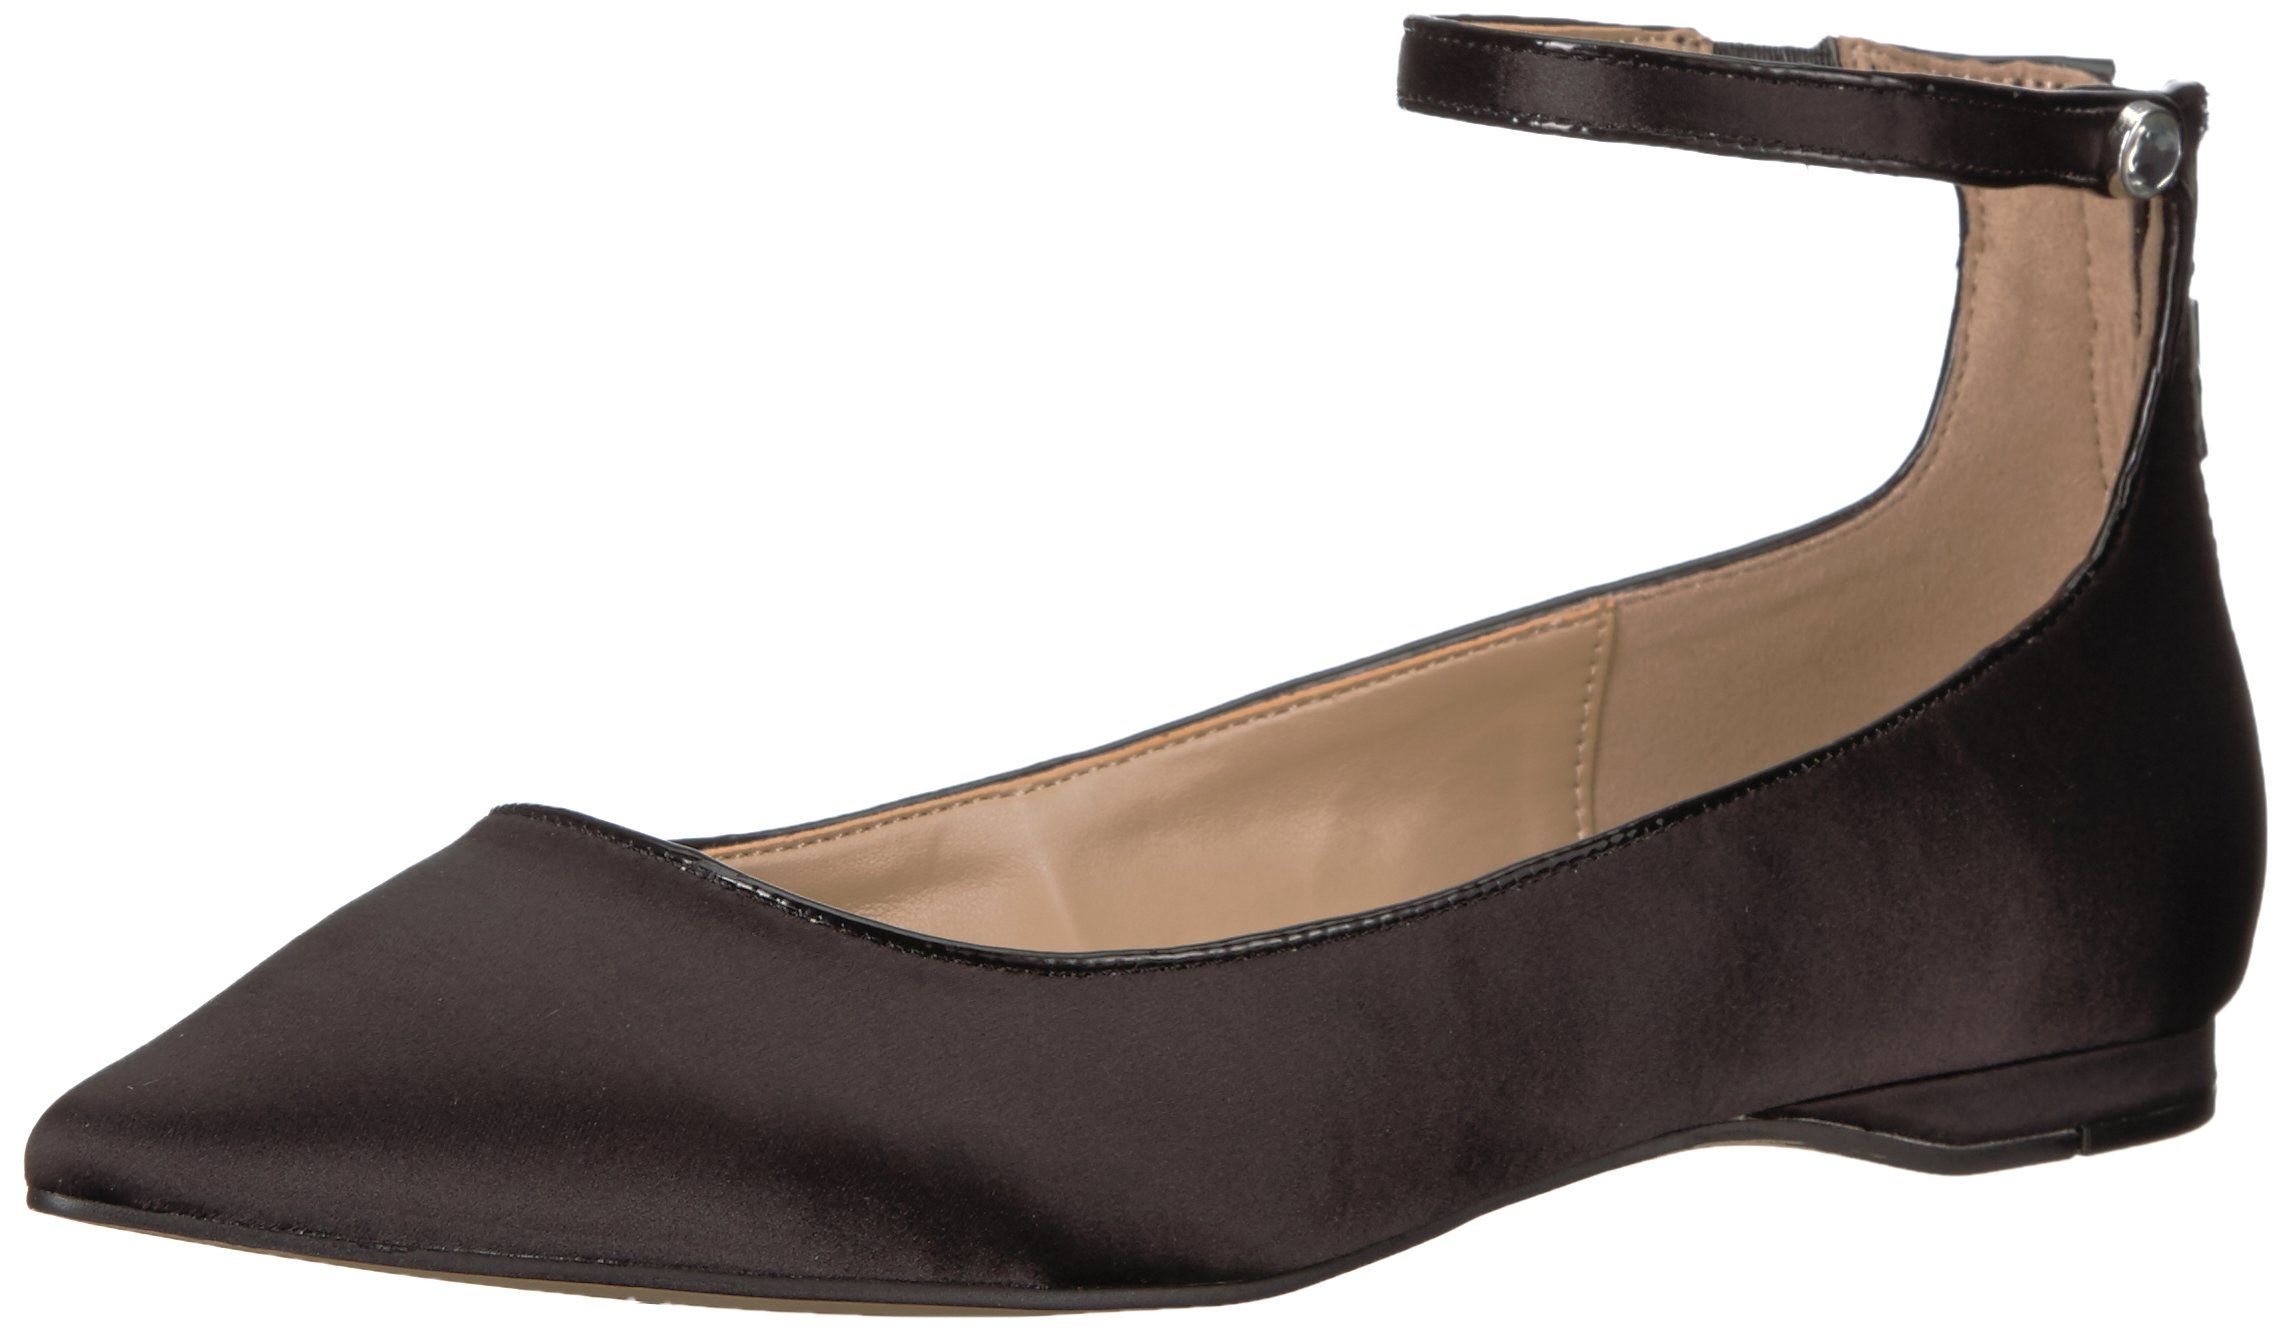 The Fix Women's Evie Military-Inspired Ankle Strap Pointed-Toe Flat, Black, 6.5 B US